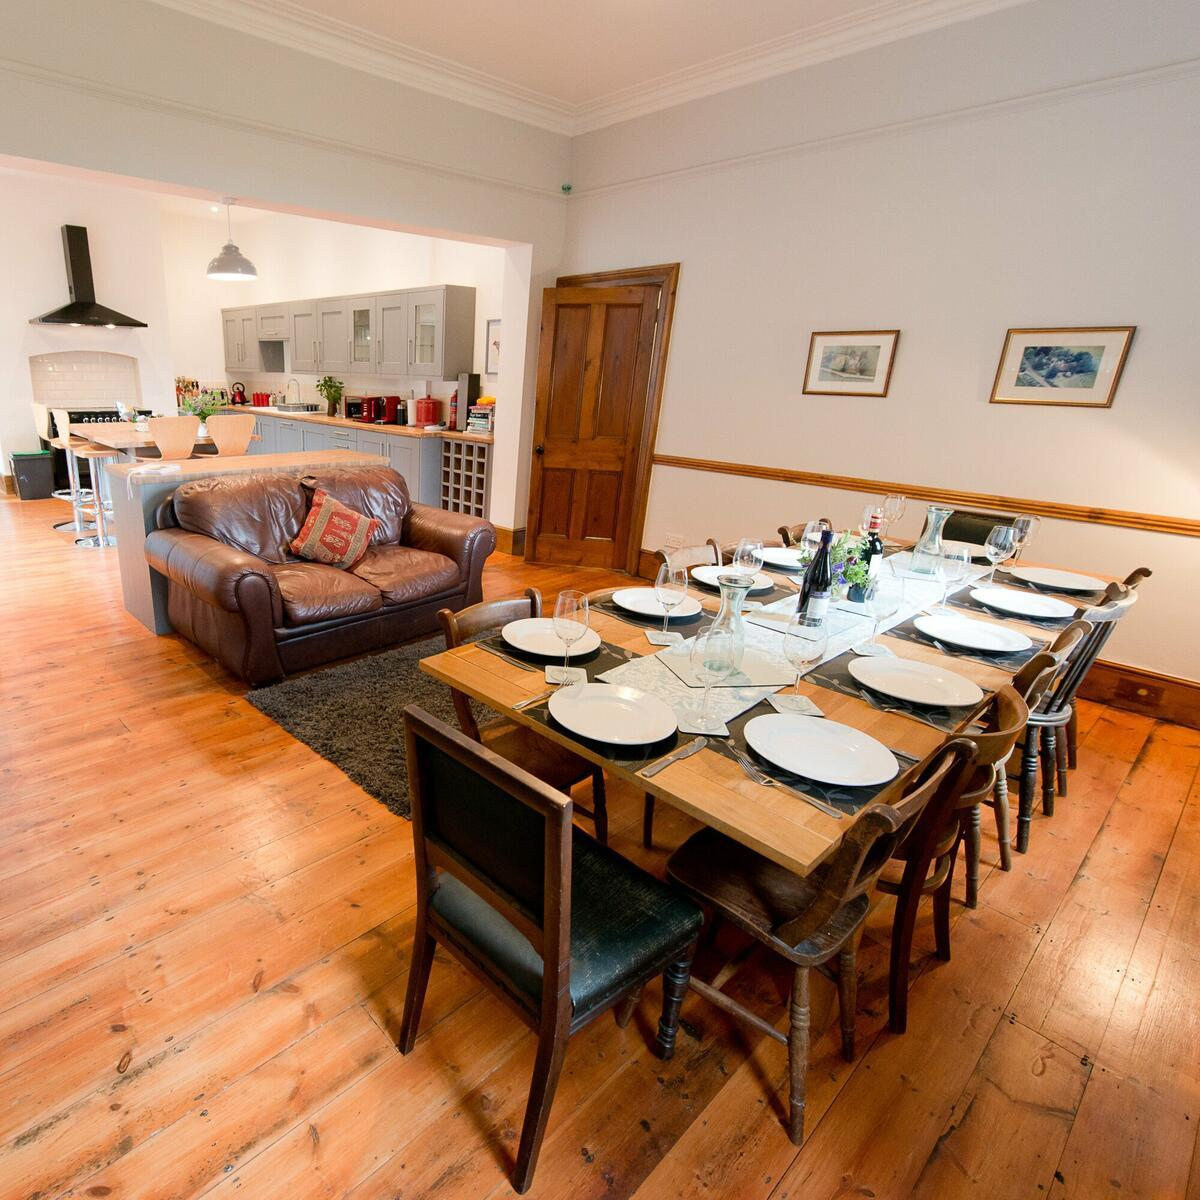 Dining room table easily seats 12 around the wood burner